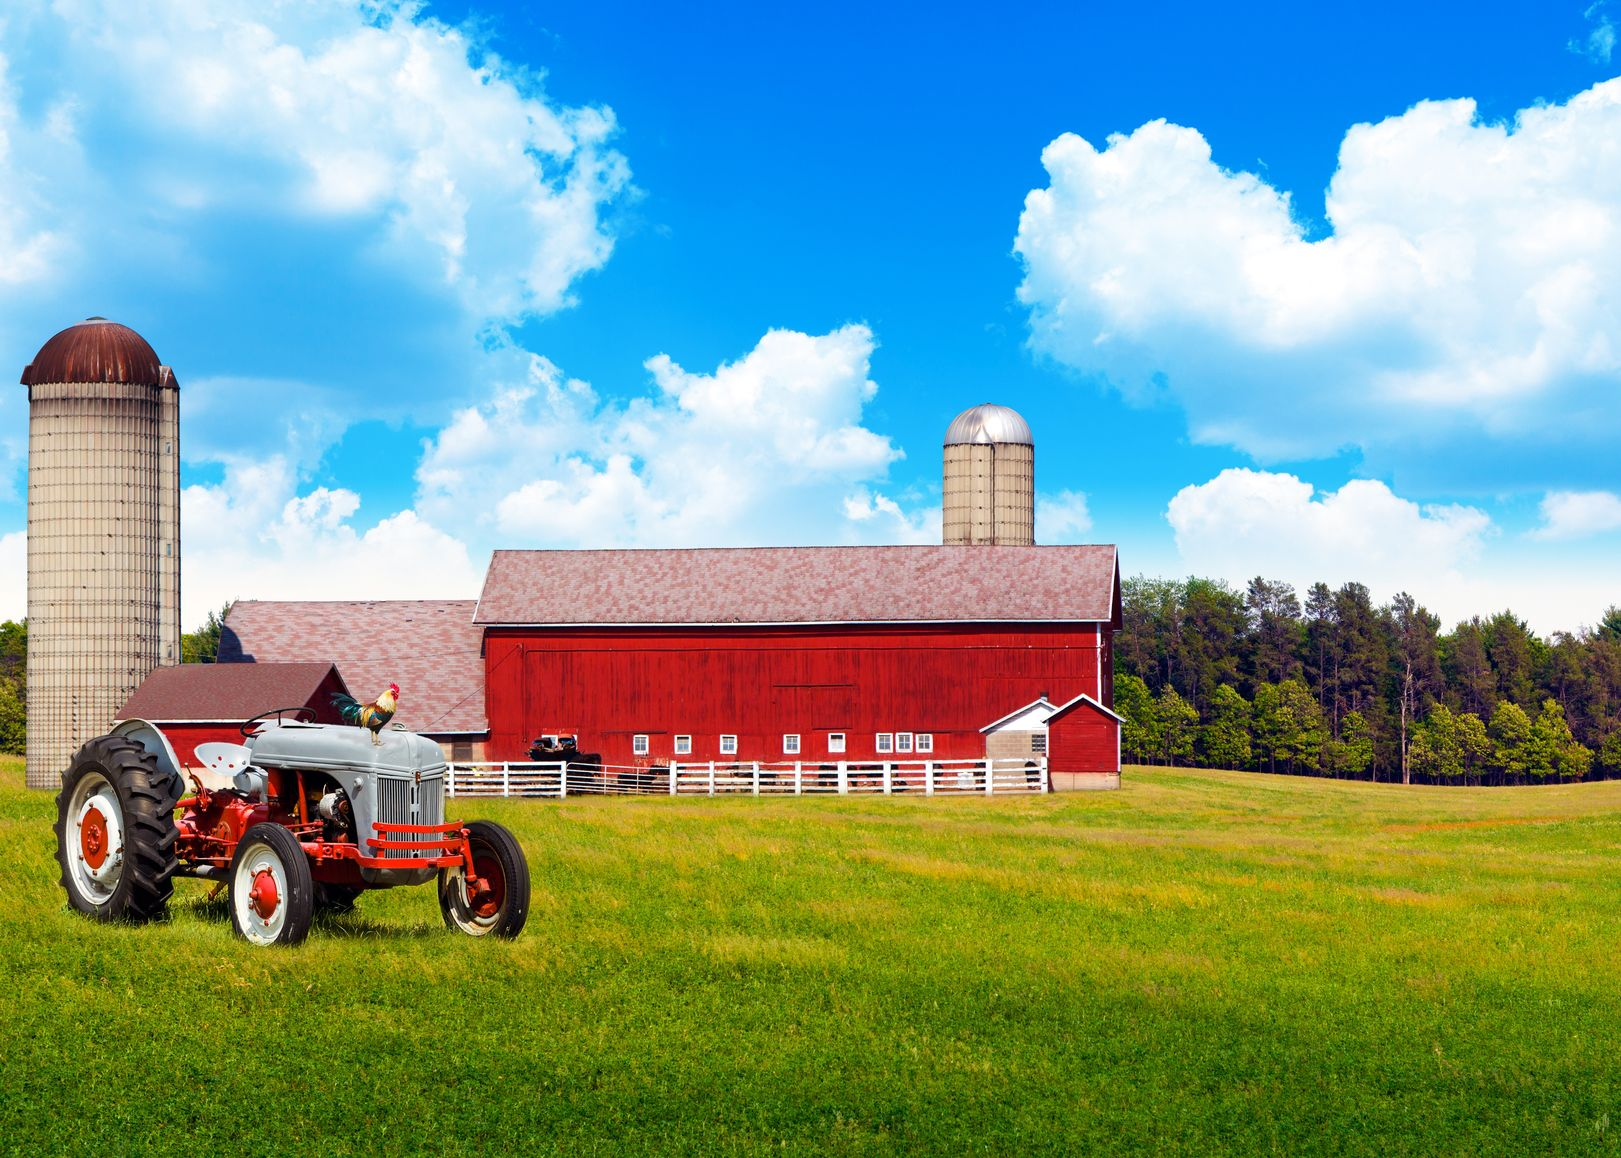 West Palm Beach, FL. Farm & Ranch Insurance